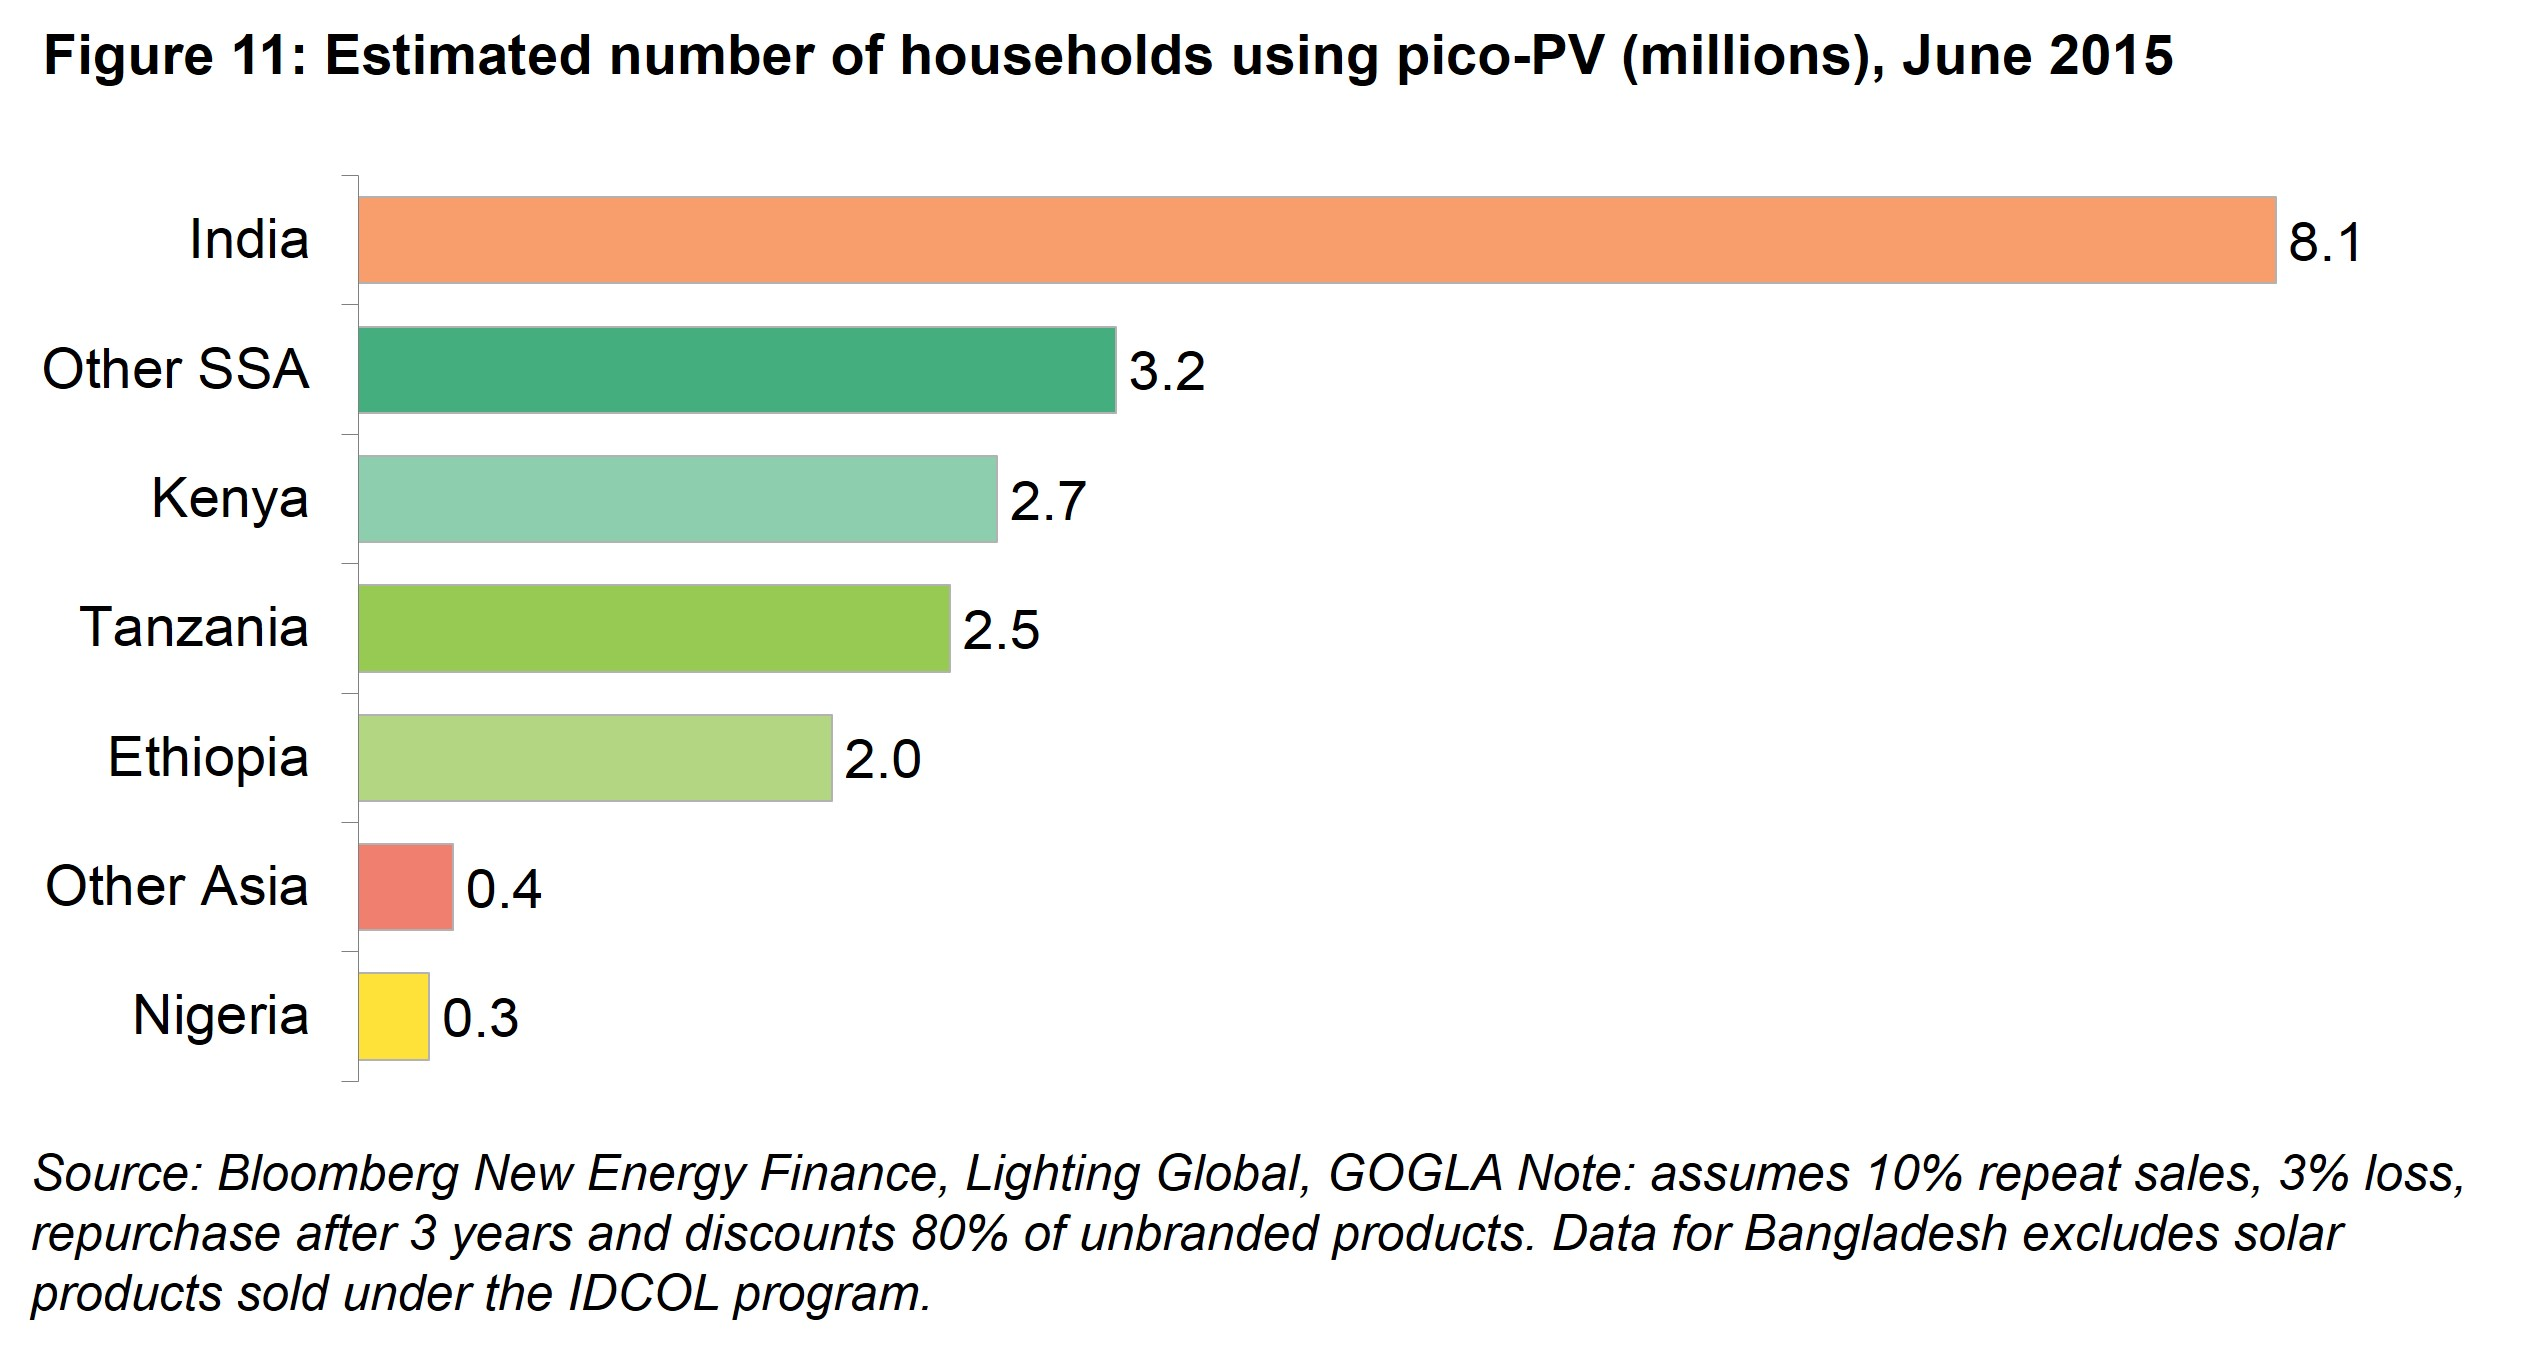 AM Fig 11 - Estimated number of households using pico-PV (millions), June 2015